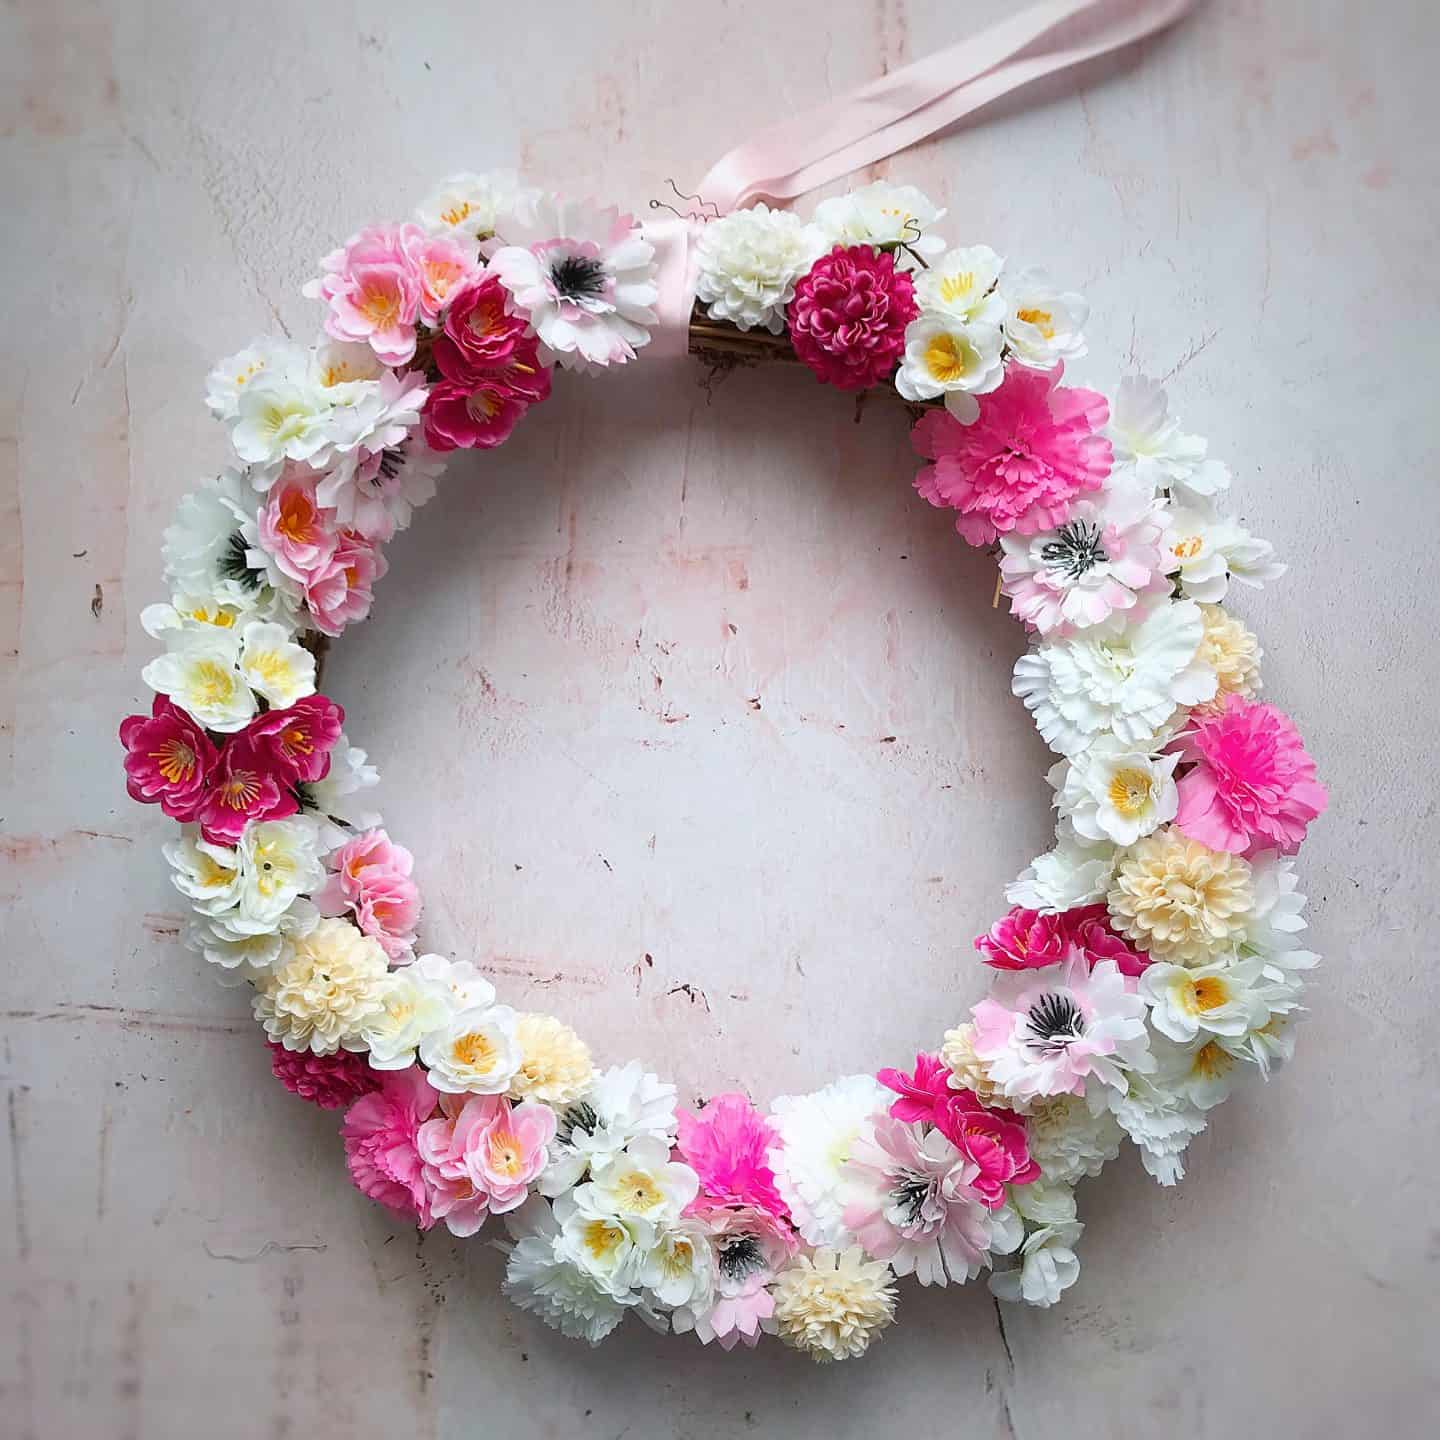 Super easy spring wreath in minutes